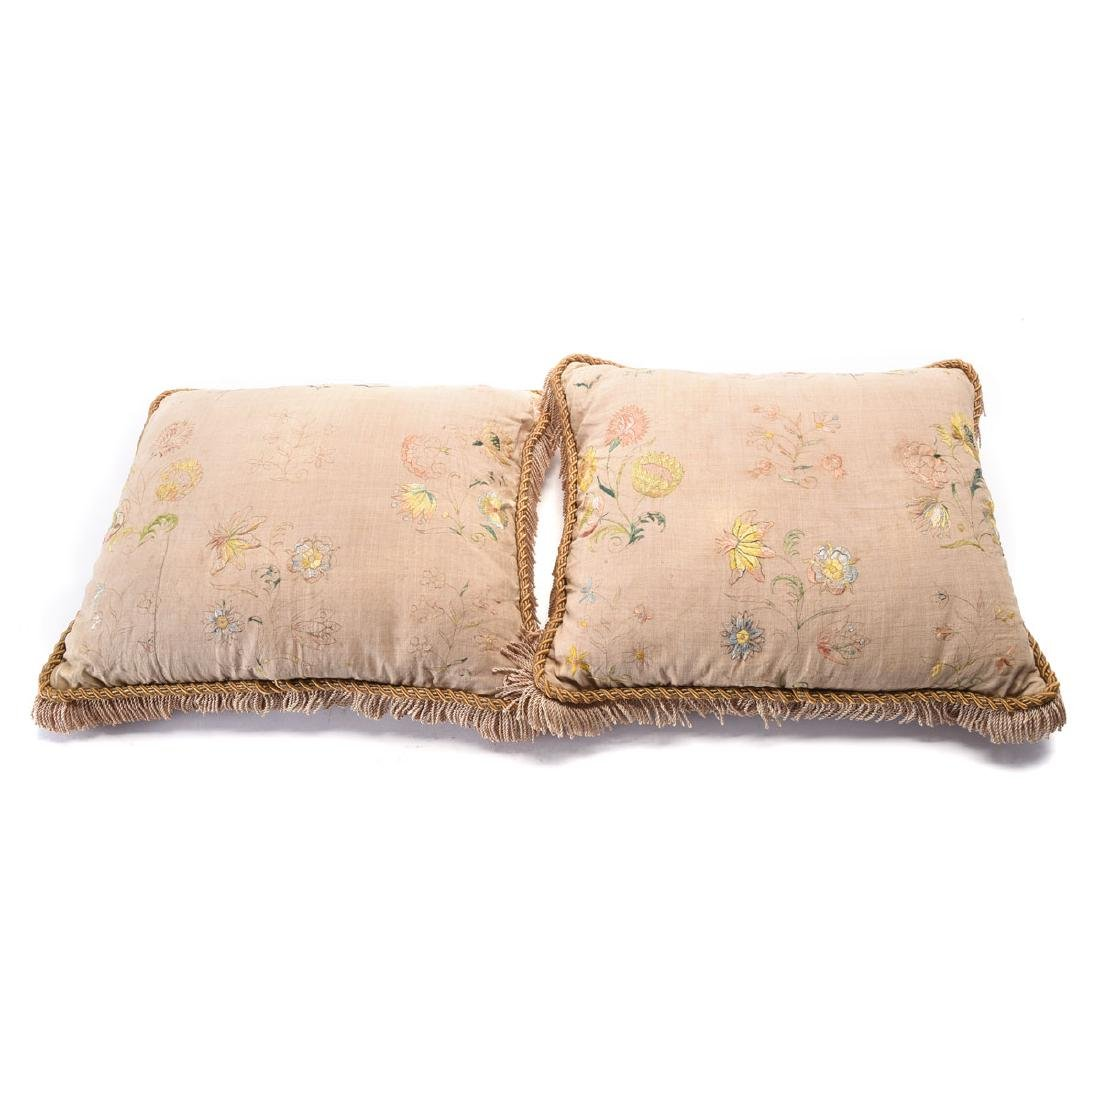 Pair of French embroidered silk moire pillows (2292),